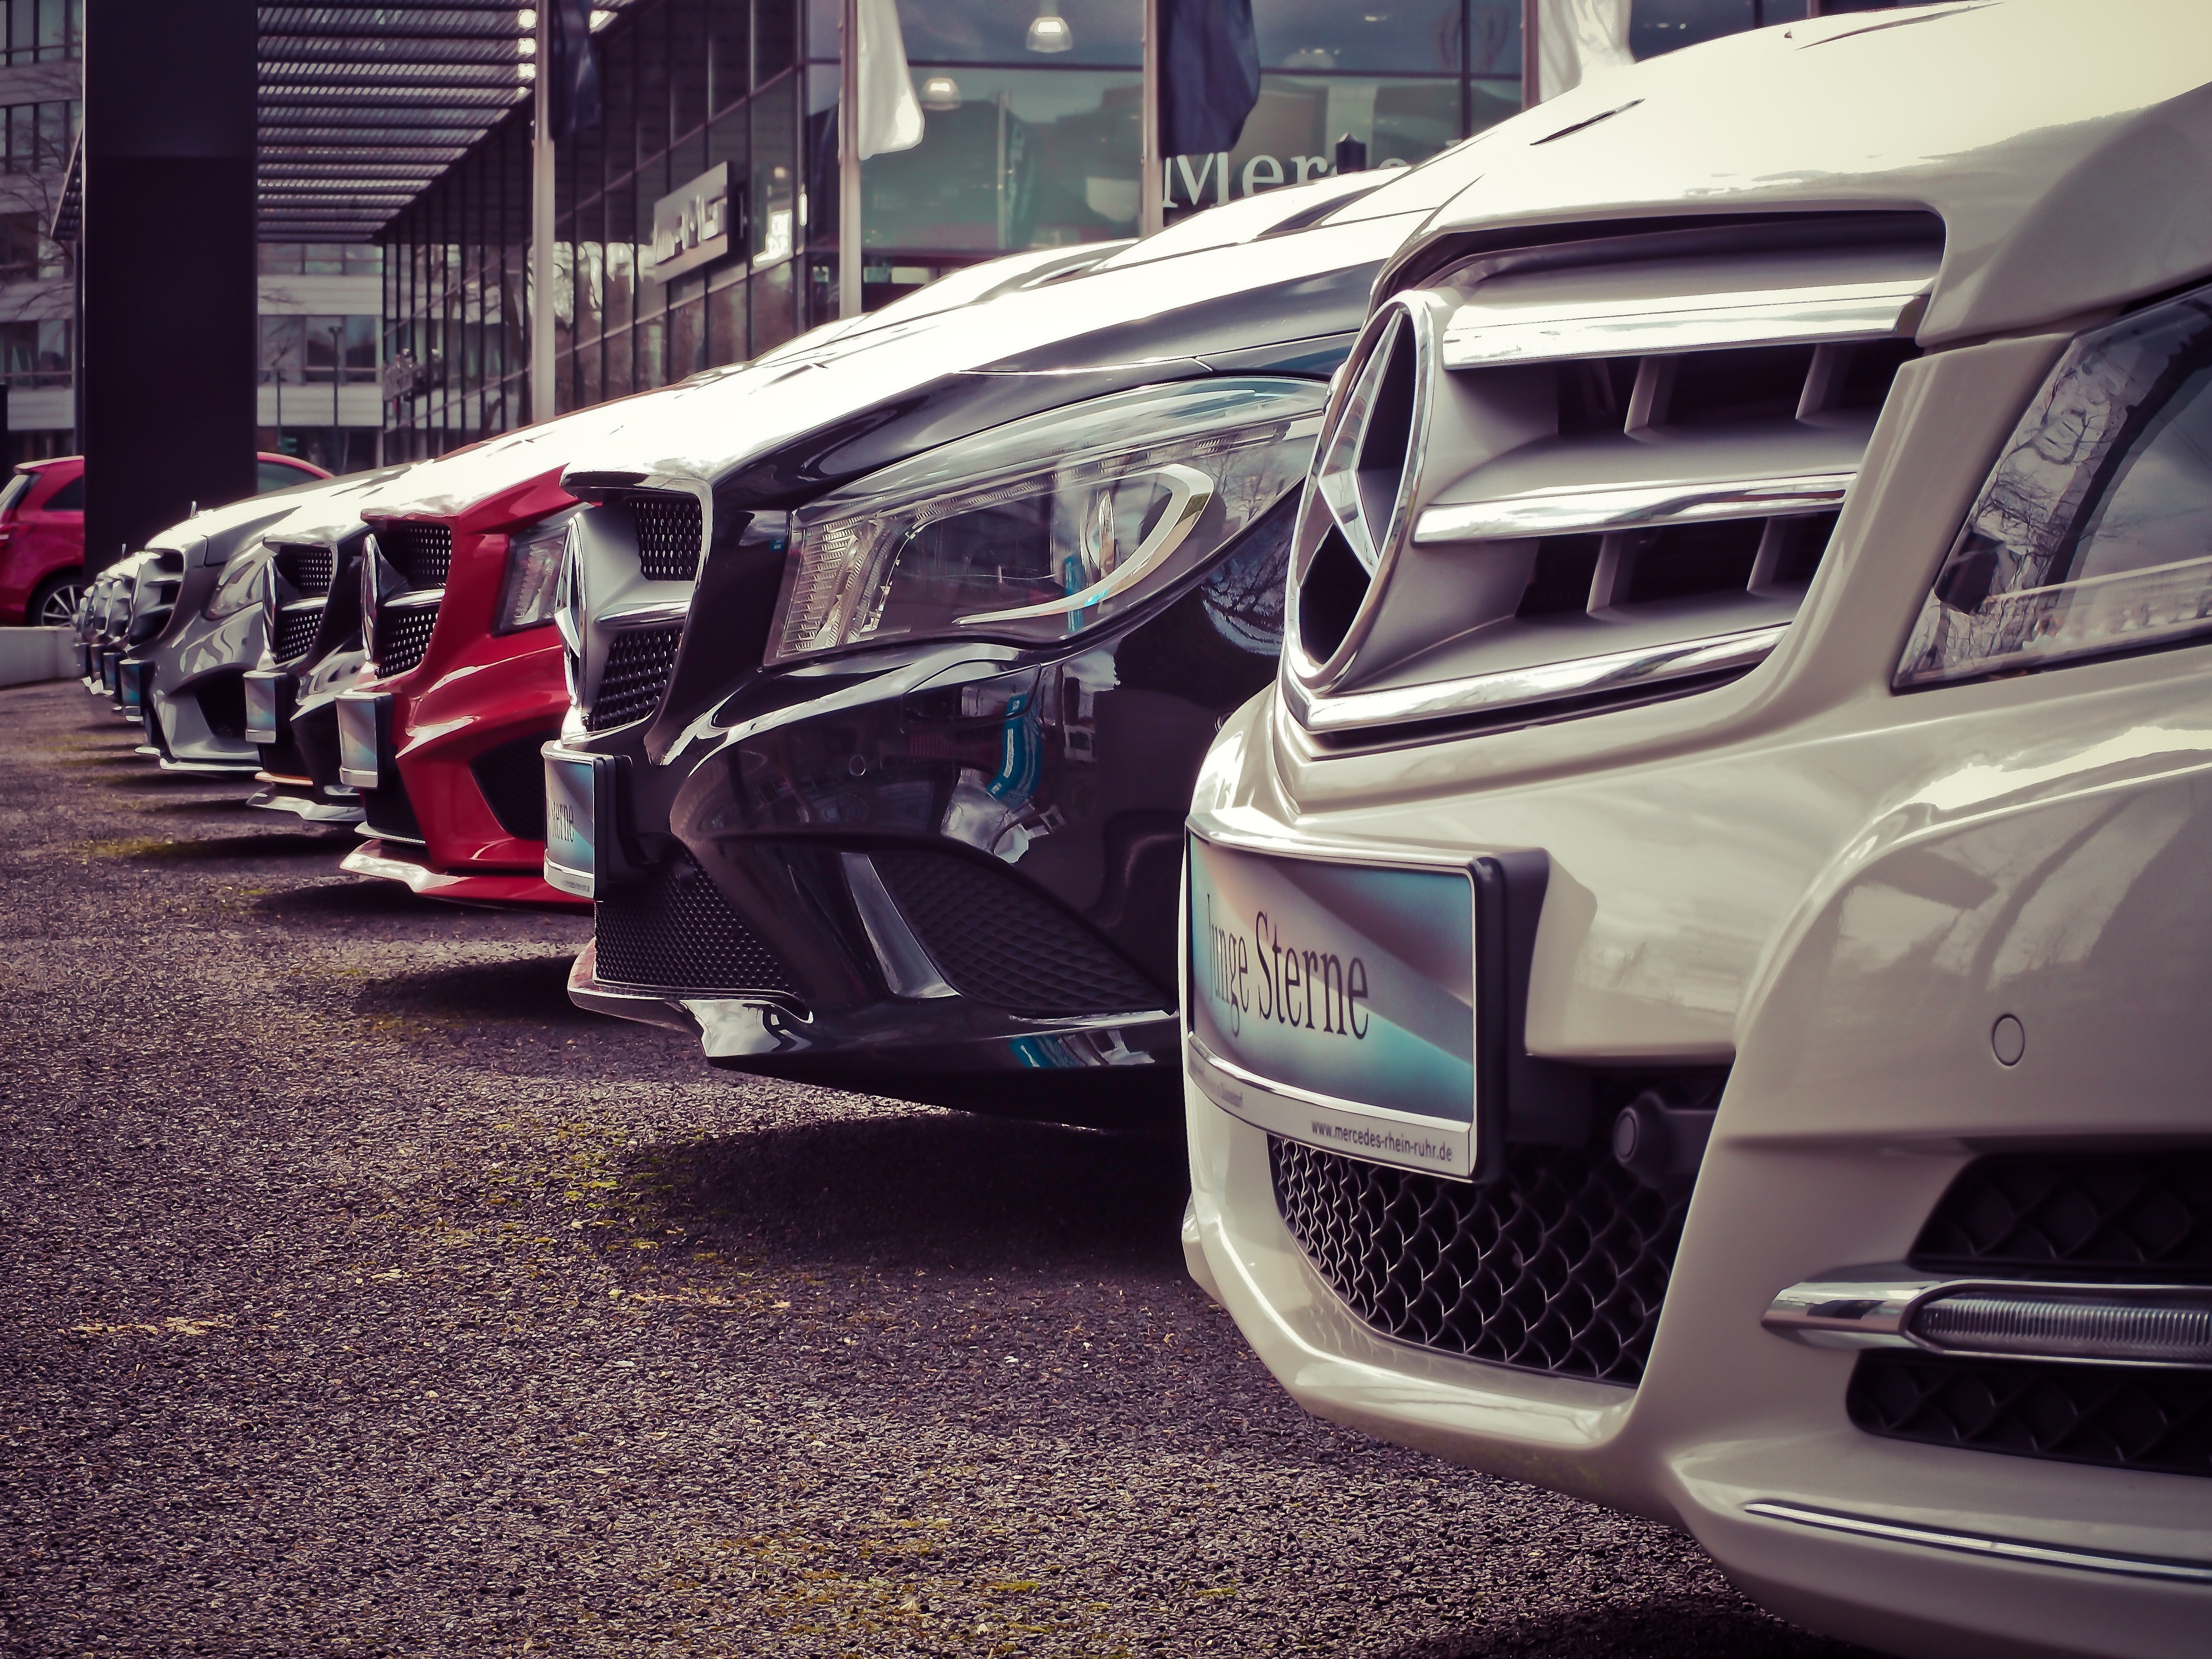 mercedes-benz-parked-in-a-row-164634.jpg (3.25 MB)